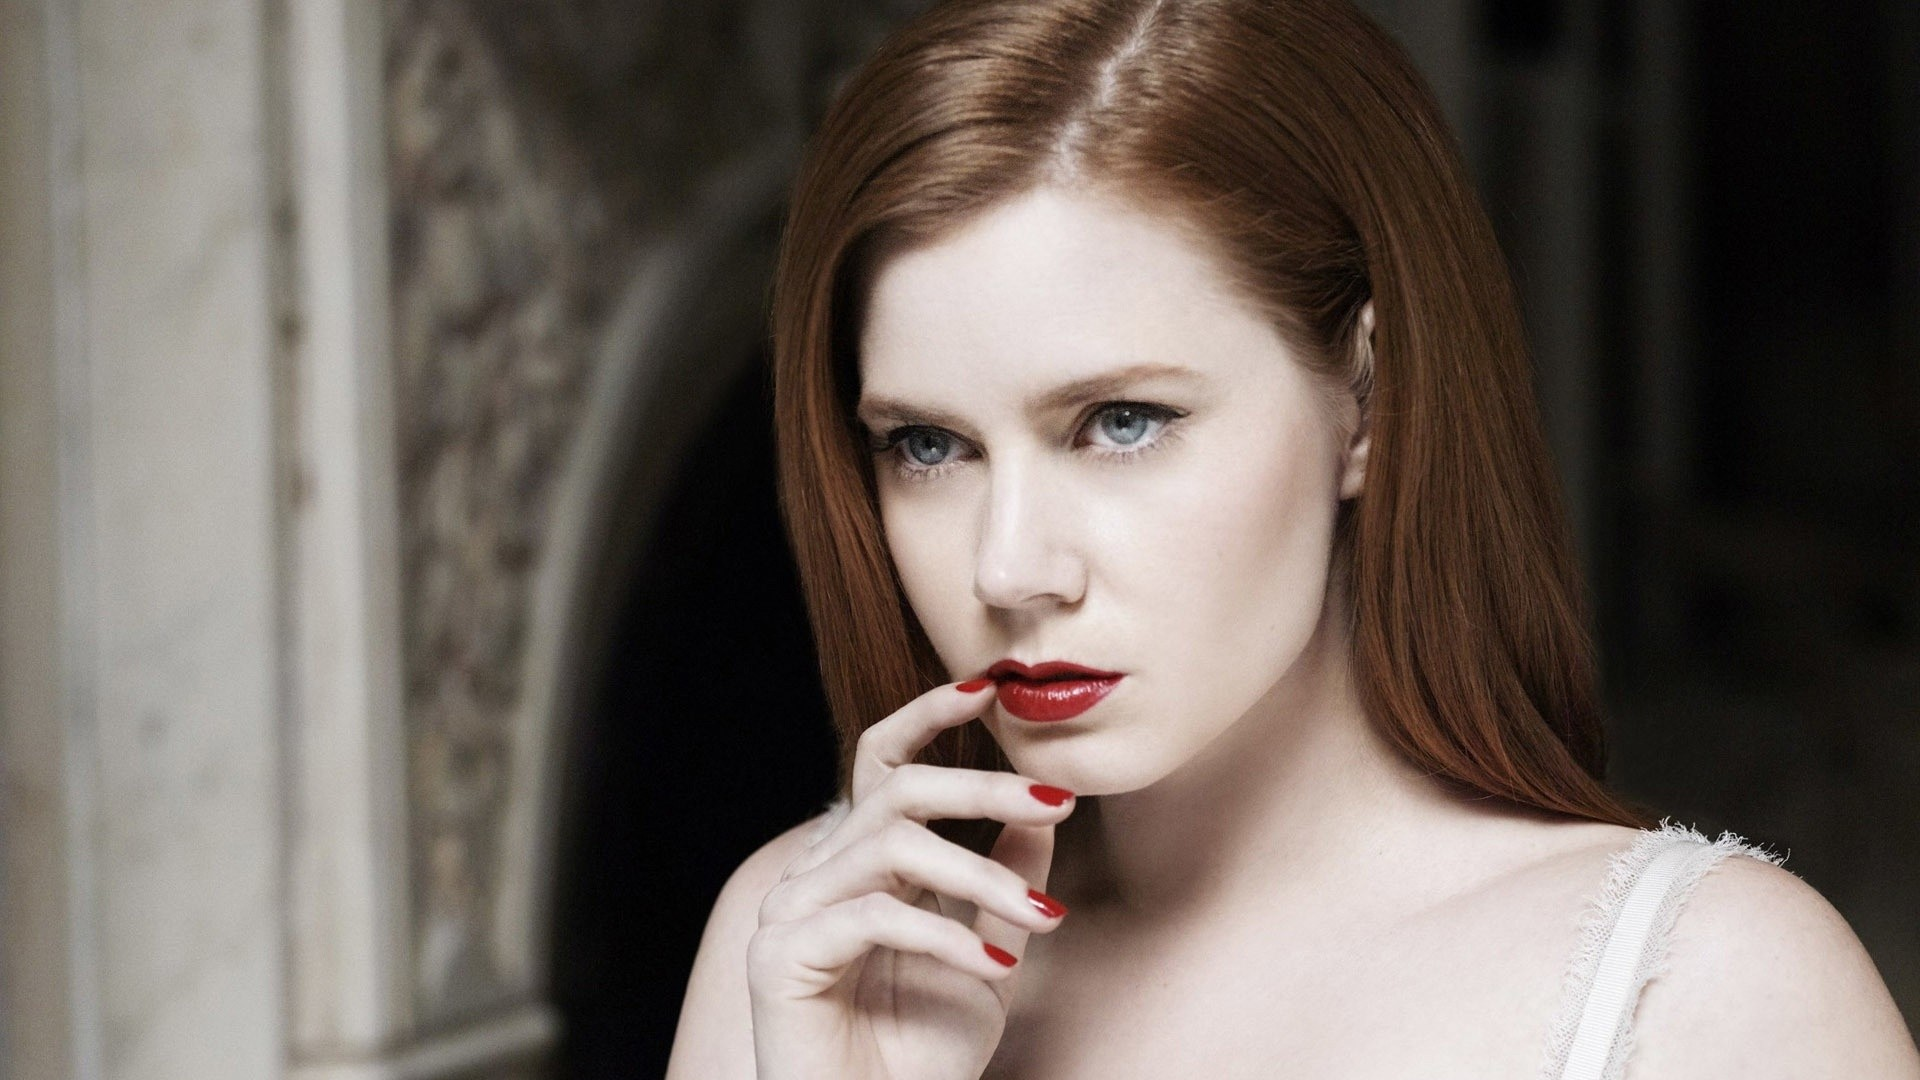 hd amy adams wonderful eye look pose mobile background desktop pics free